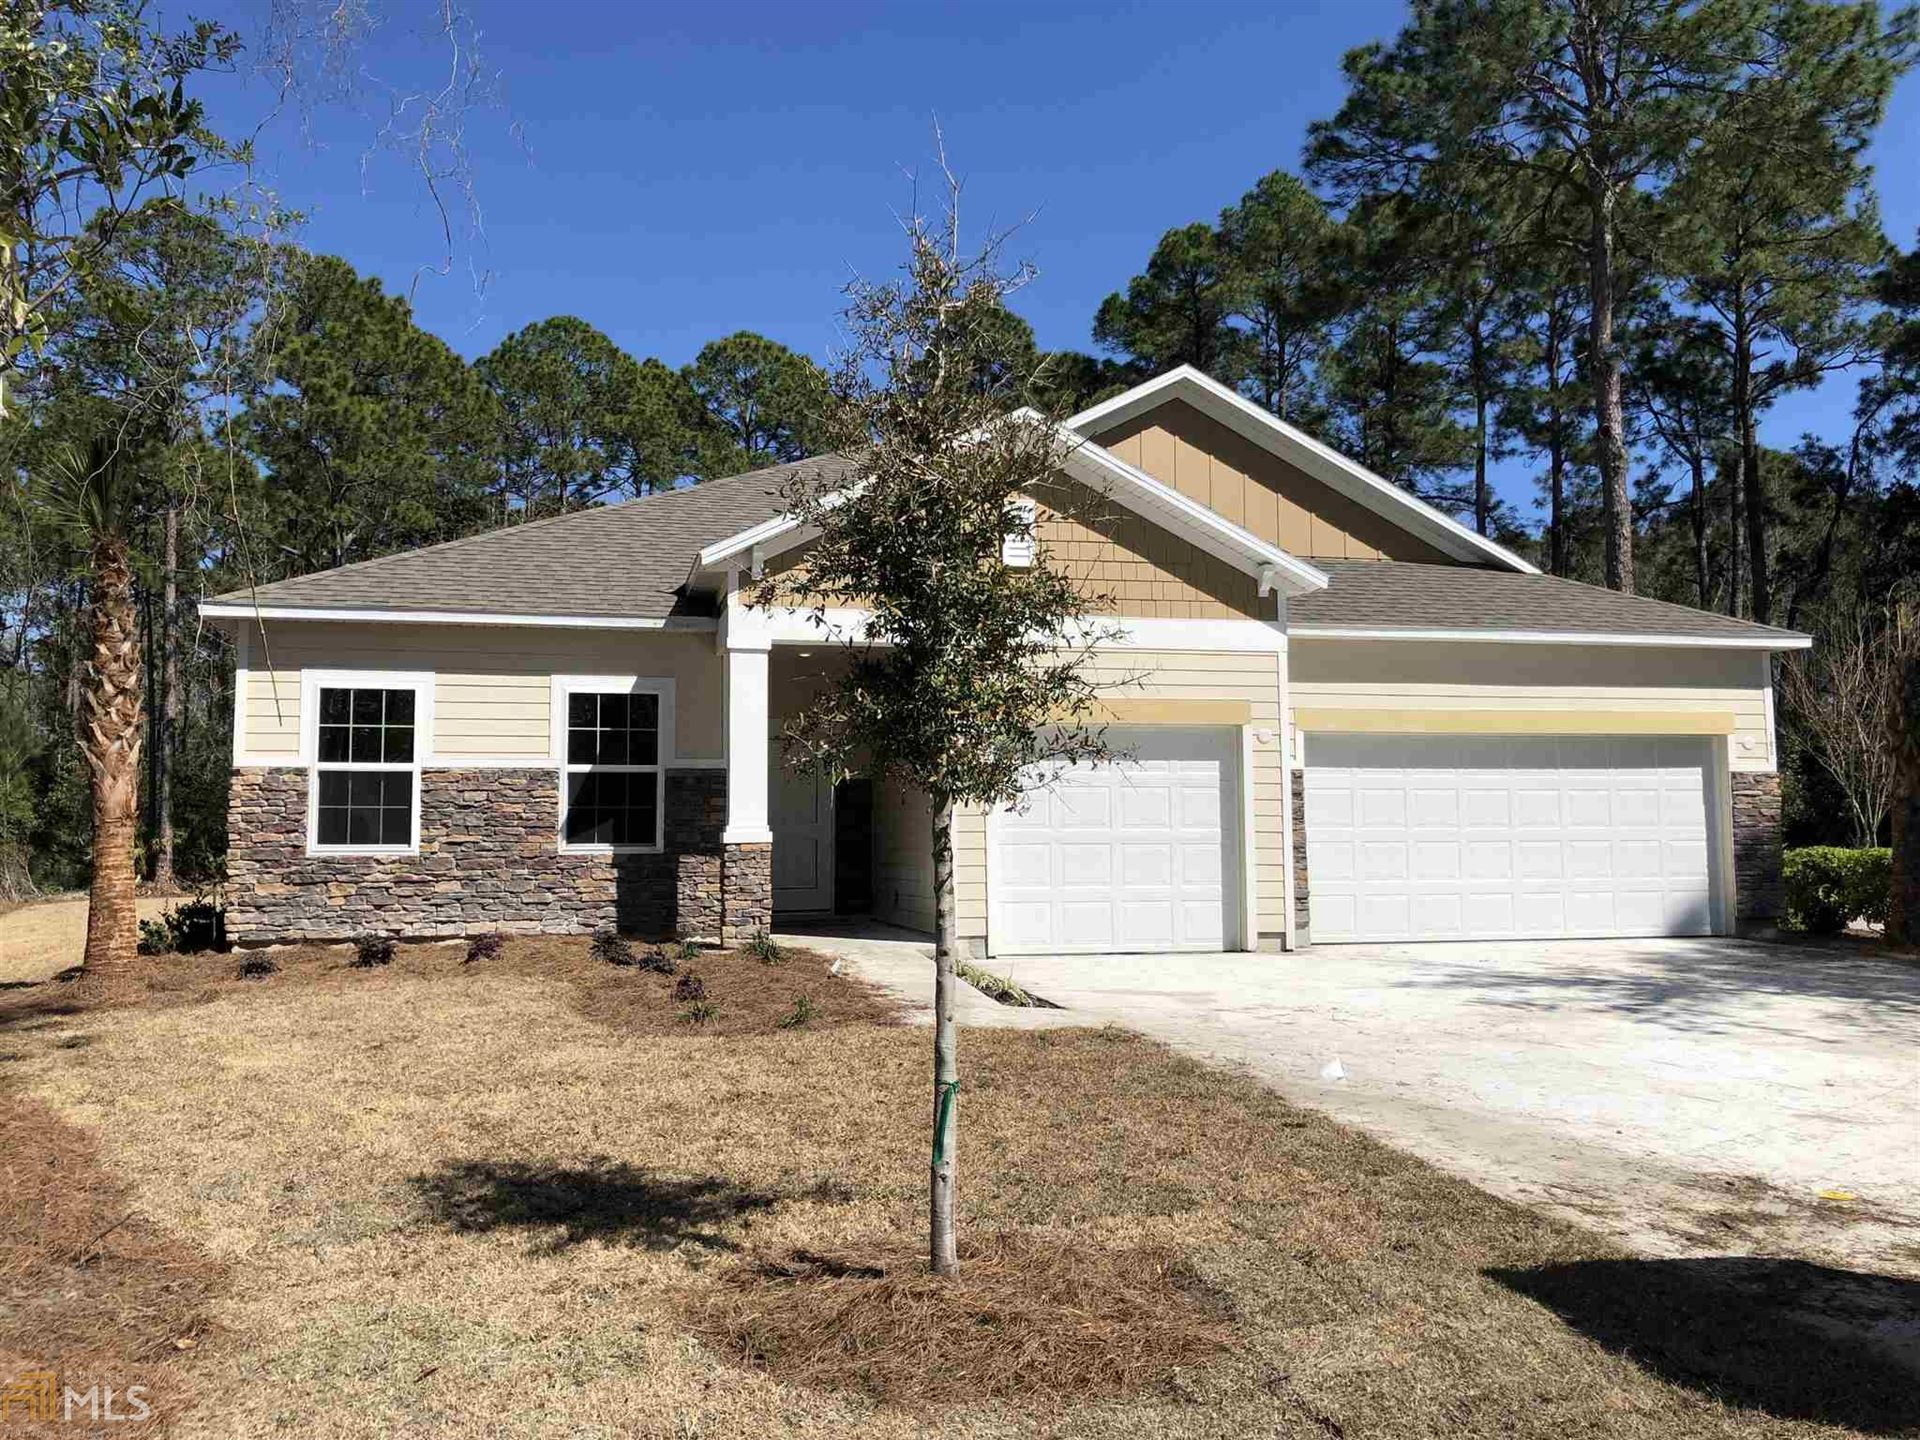 105 Raptor Way, Saint Marys, GA 31558 - MLS#: 8765992